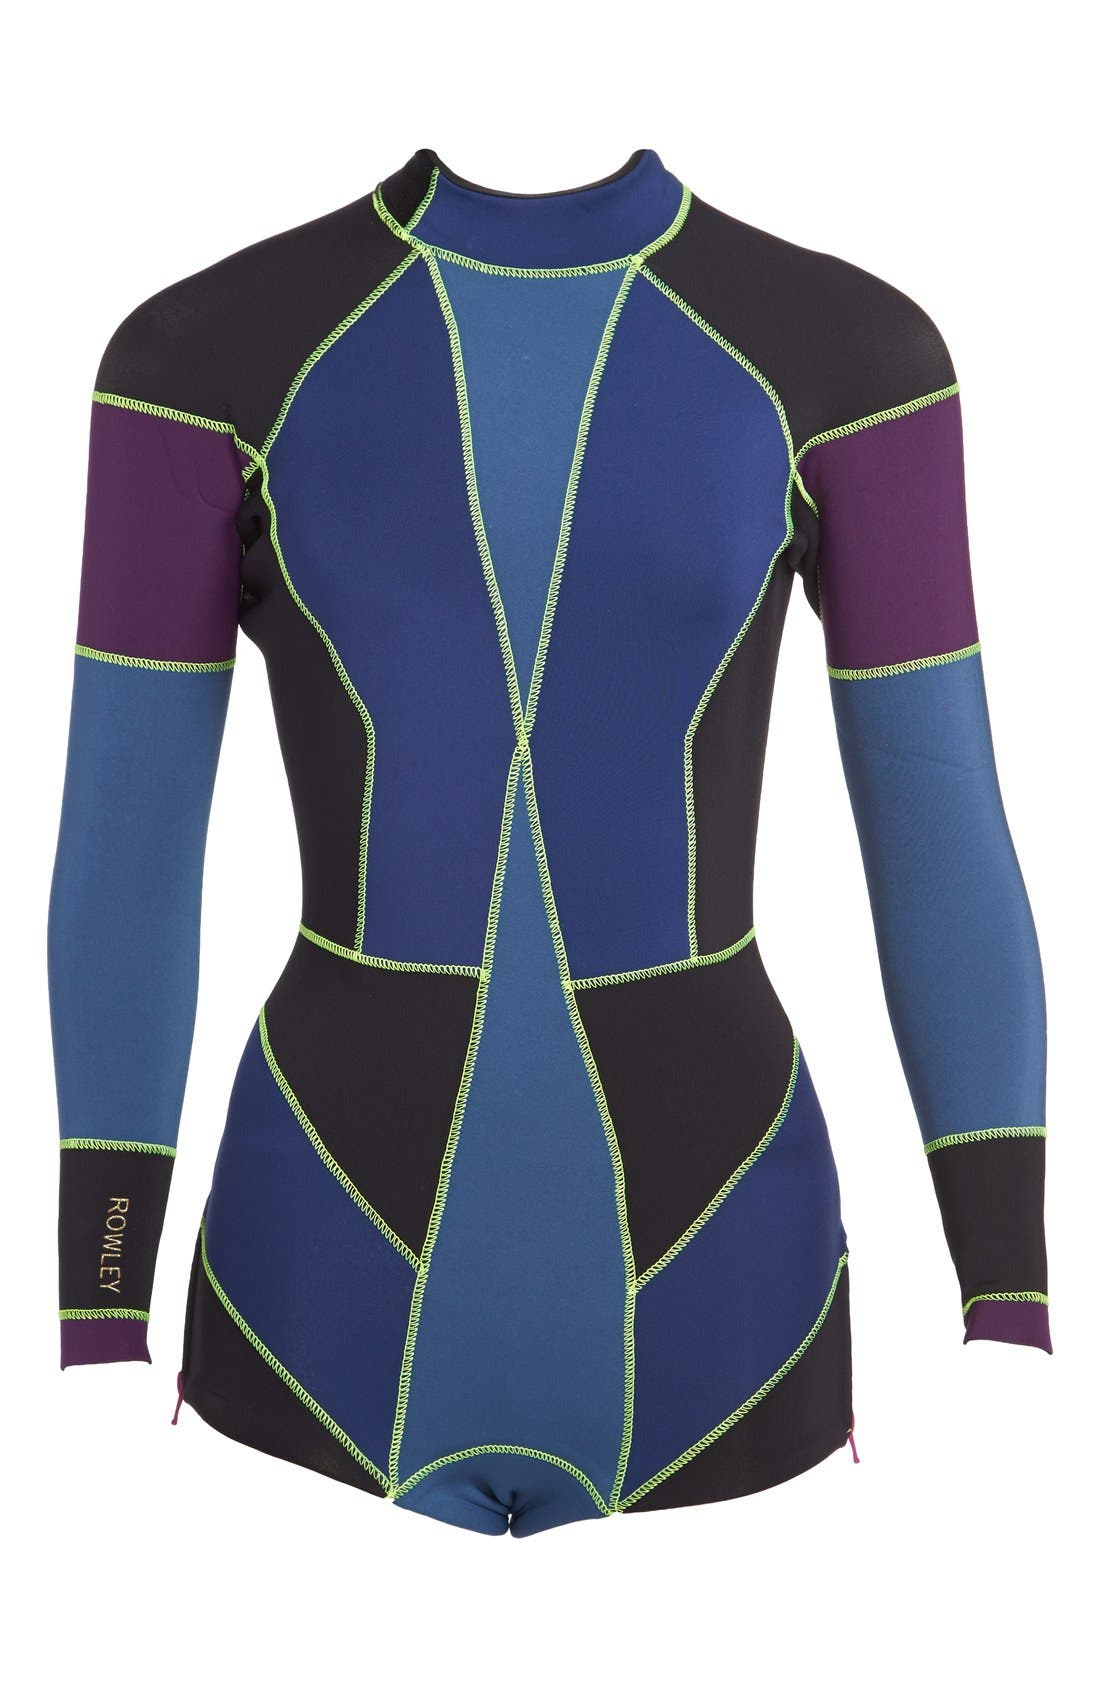 CYNTHIA ROWLEY,                             Colorblock Wetsuit,                             Alternate thumbnail 3, color,                             410